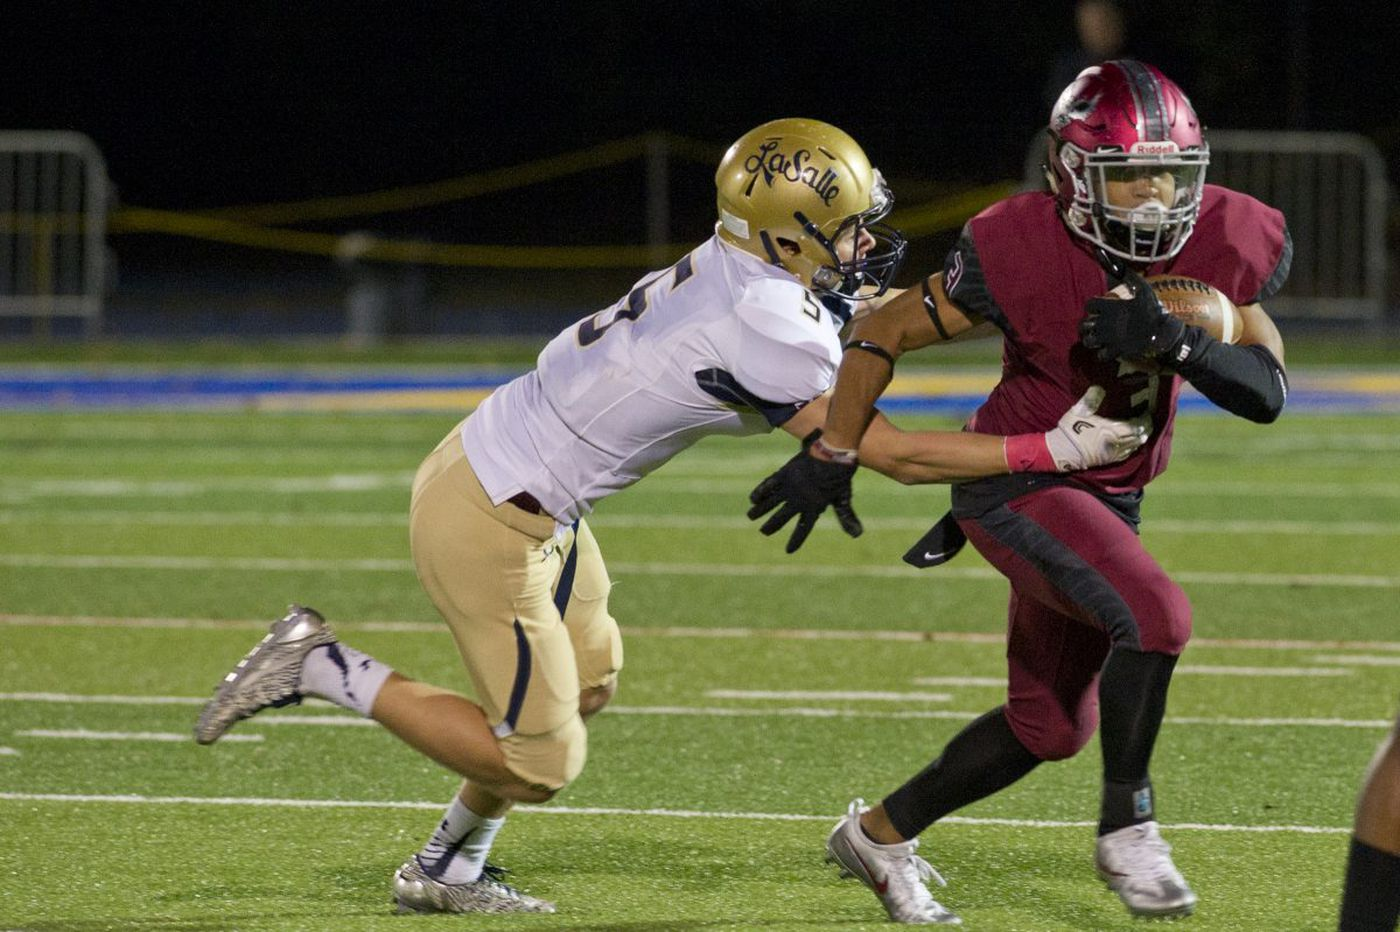 Saturday's Pa. roundup: St. Joseph's Prep rolls past Northeast for District 12 6A championship